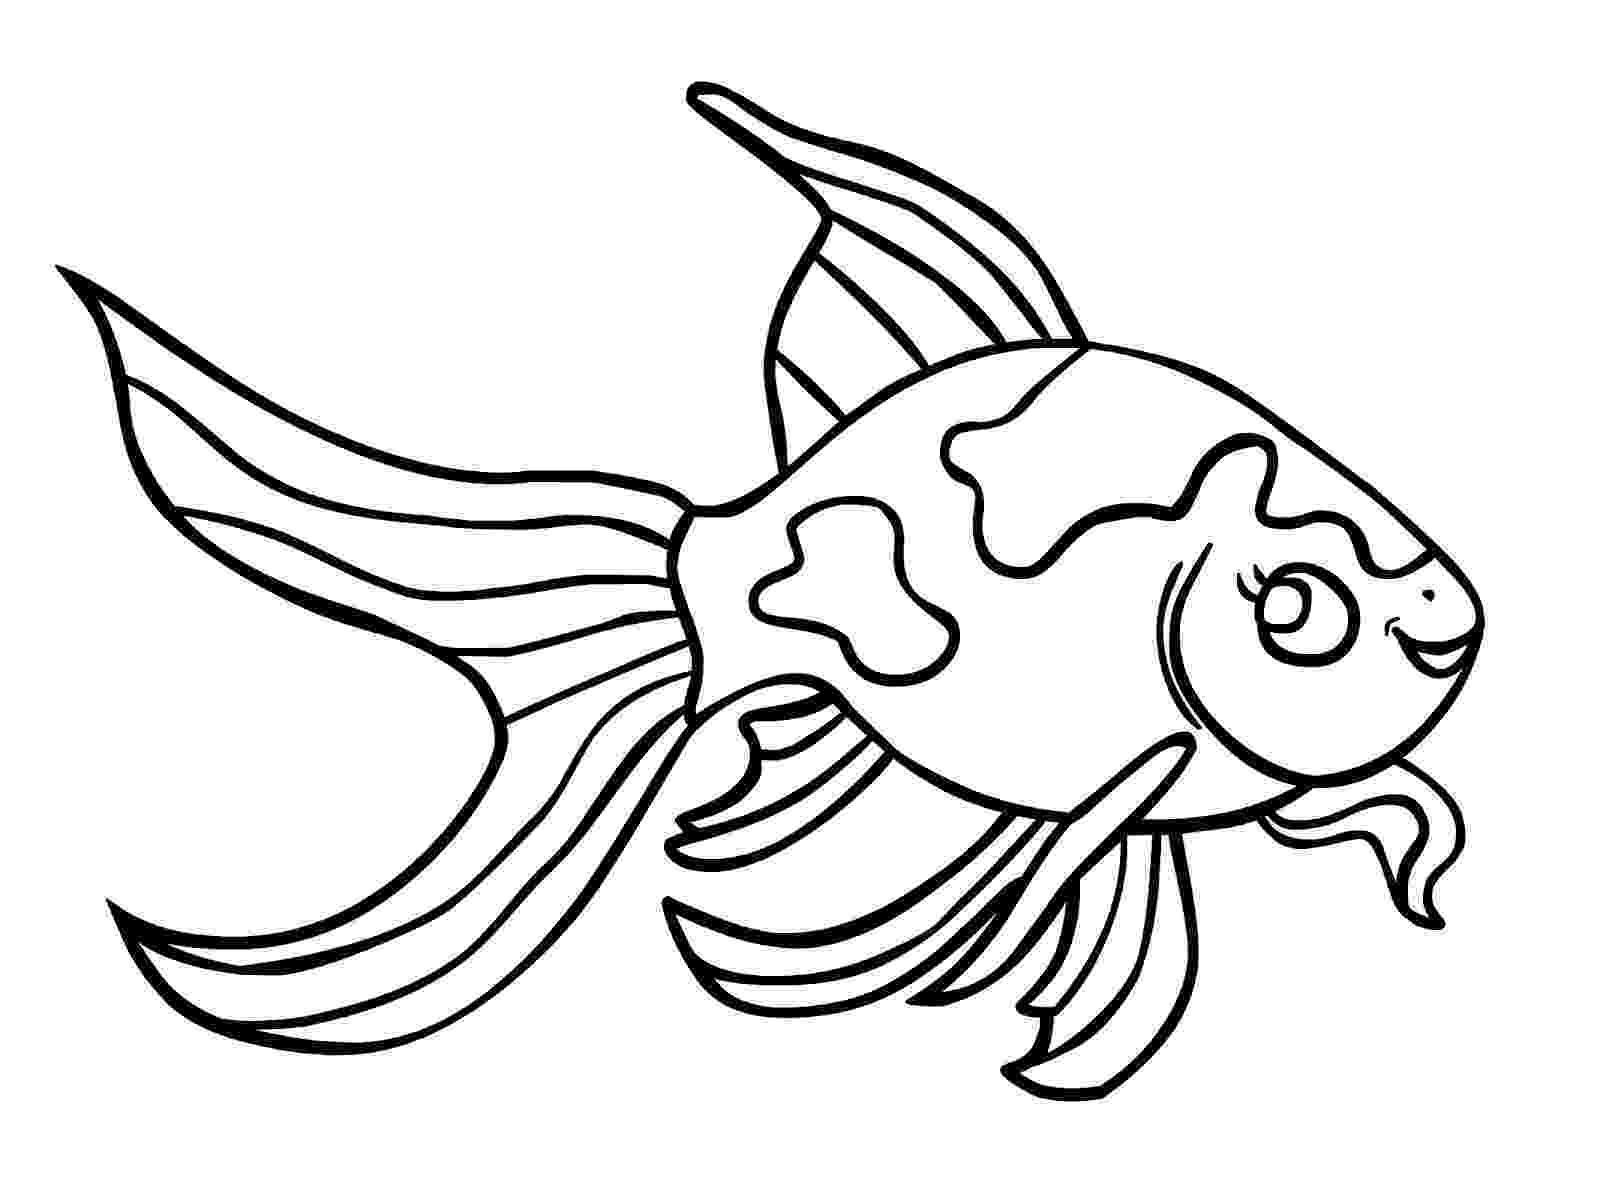 fish colouring book easy coloring pages fish coloring page easy coloring colouring book fish